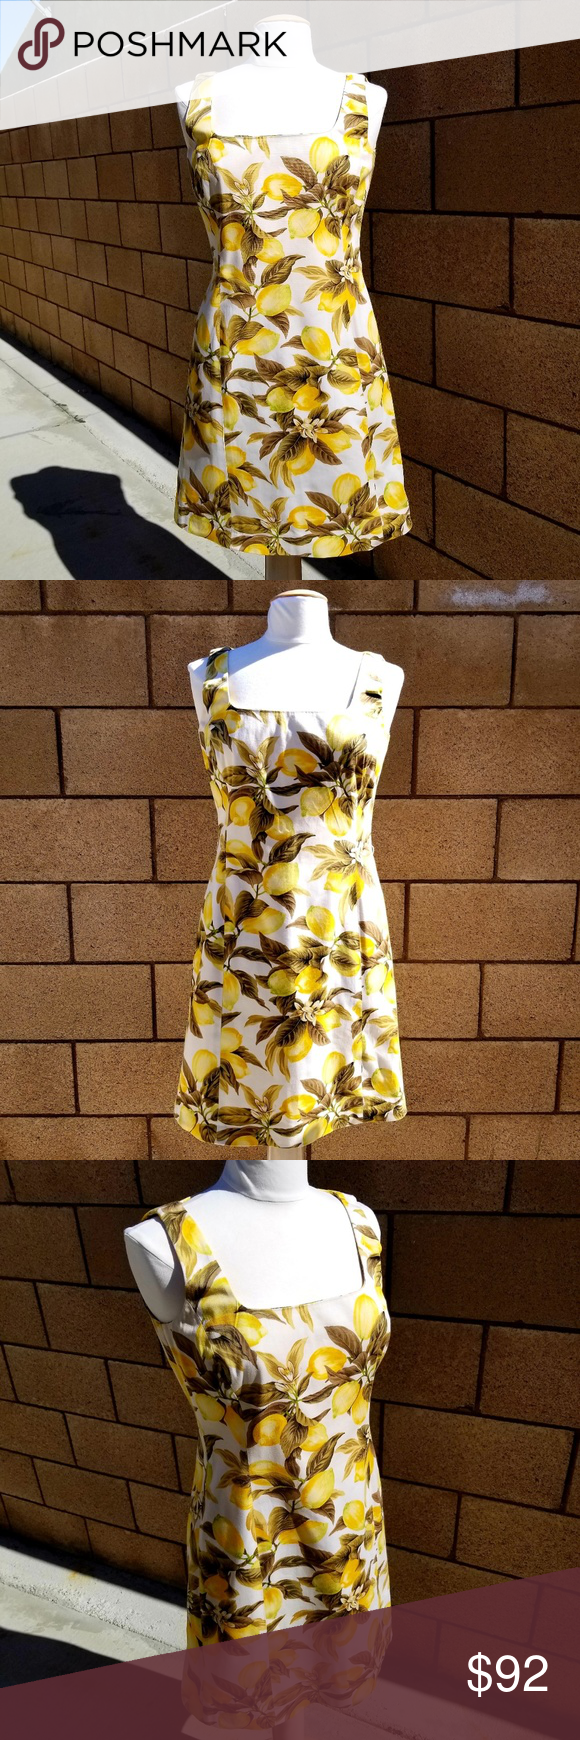 Company Ellen Tracy Lemon Fruit SpringSummer Dress Besides a missing belt and th…